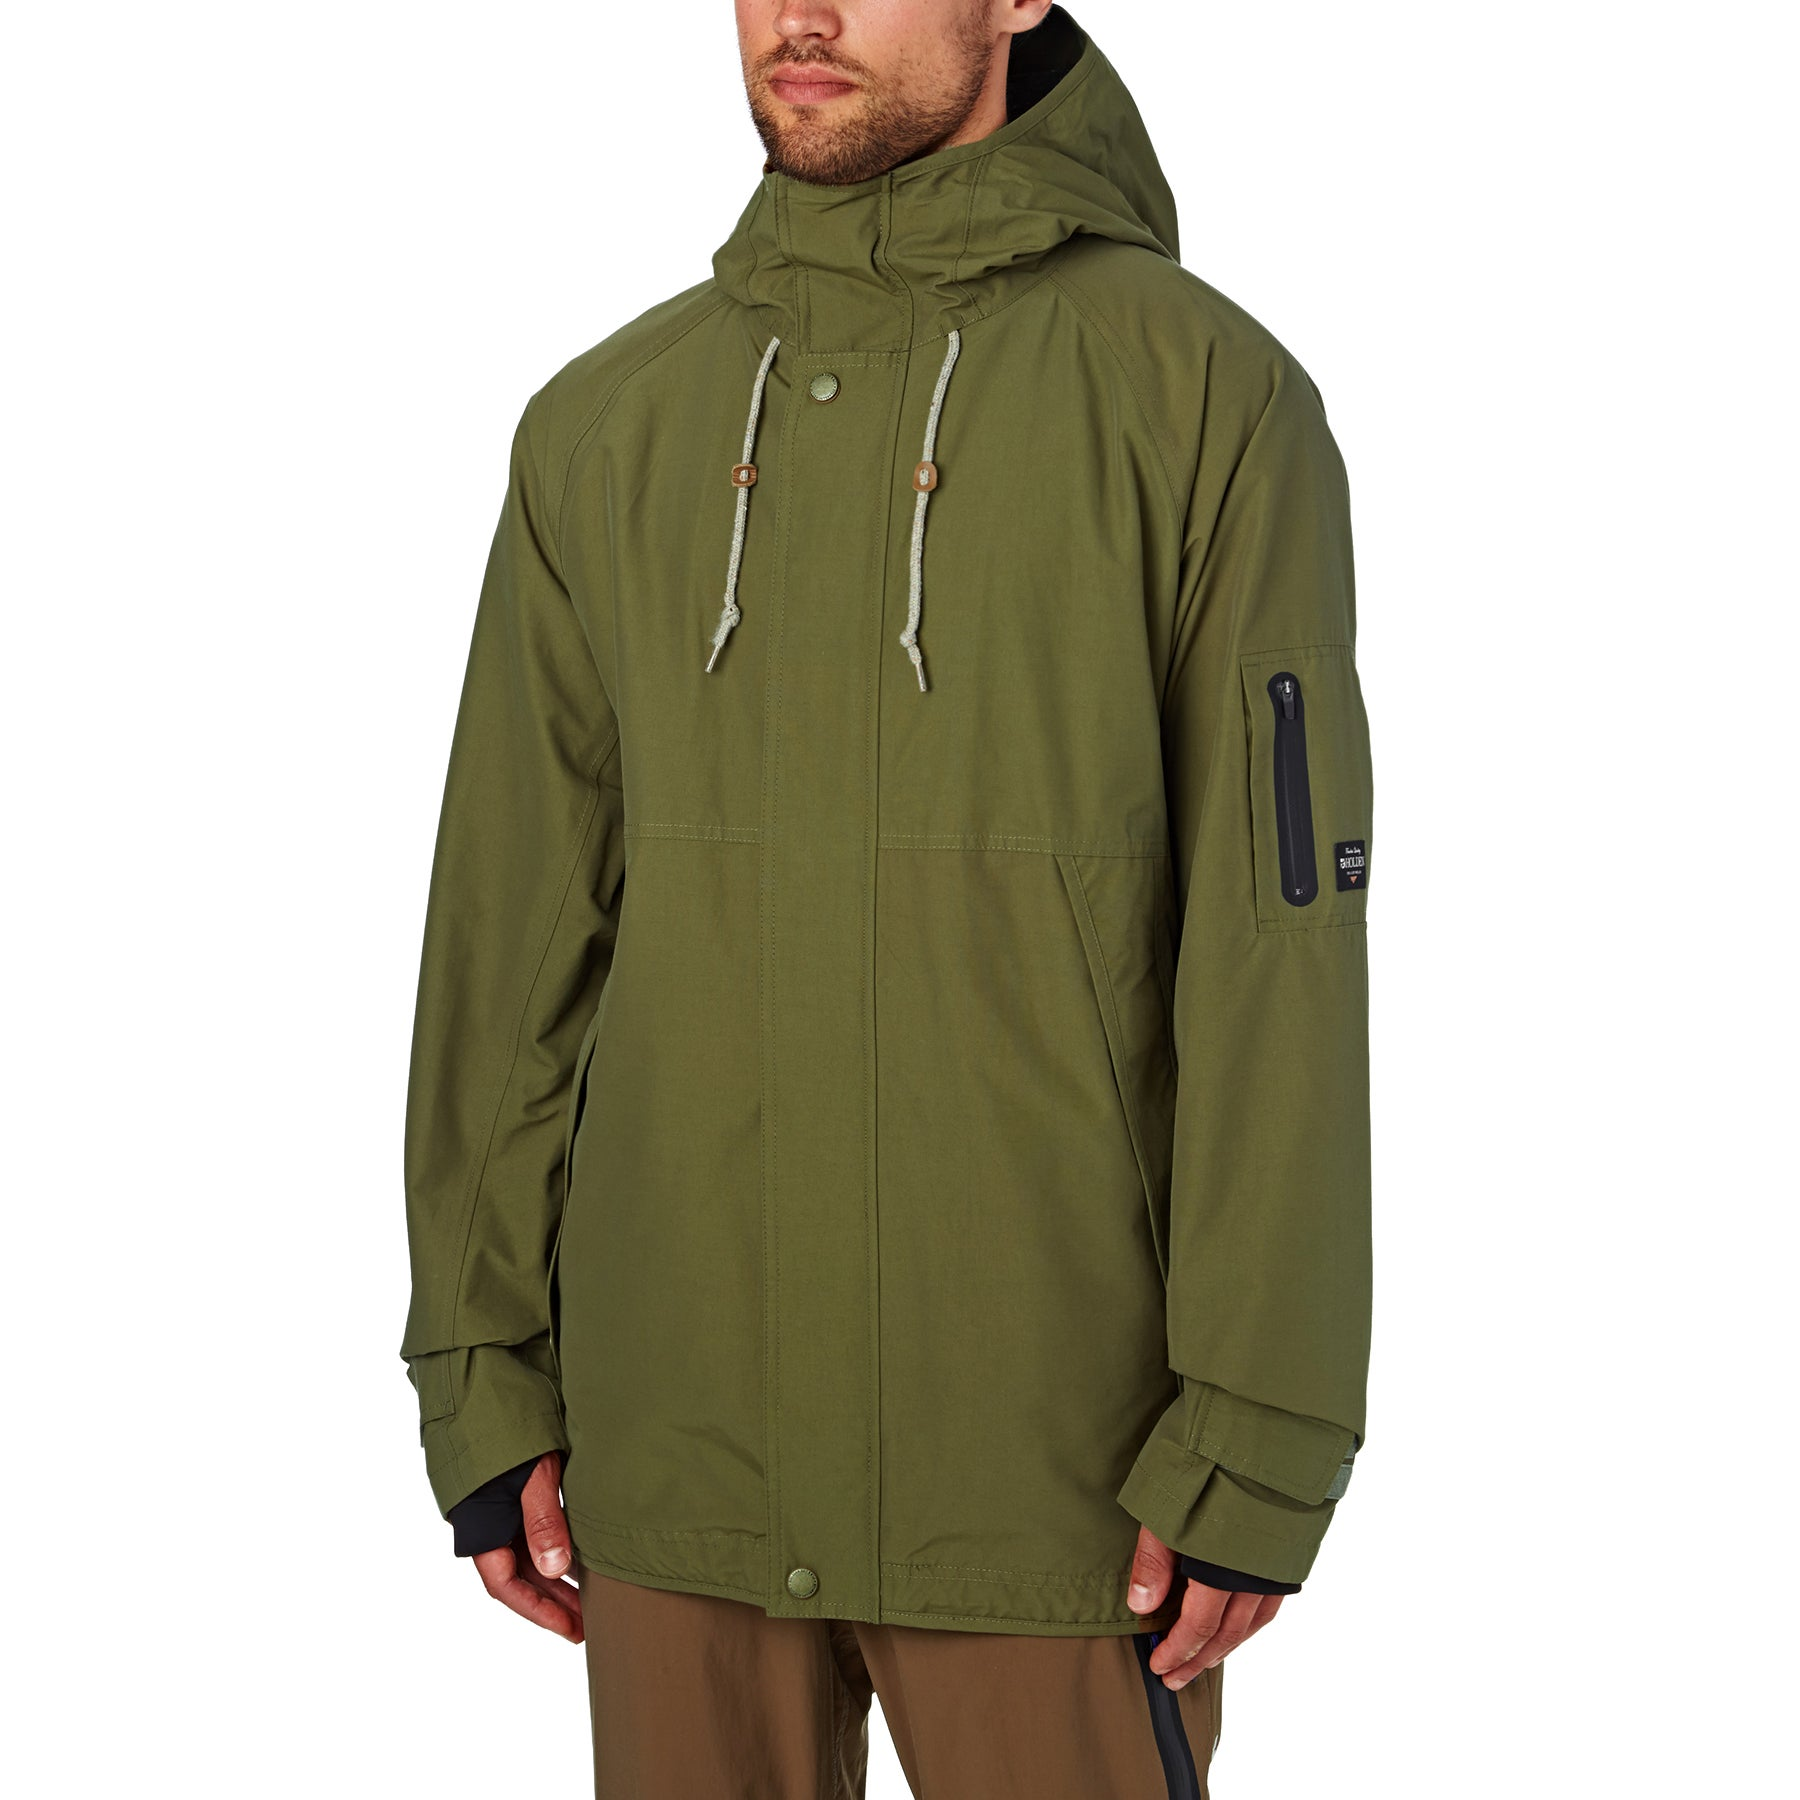 Holden Sparrow Snow Jacket - Olive